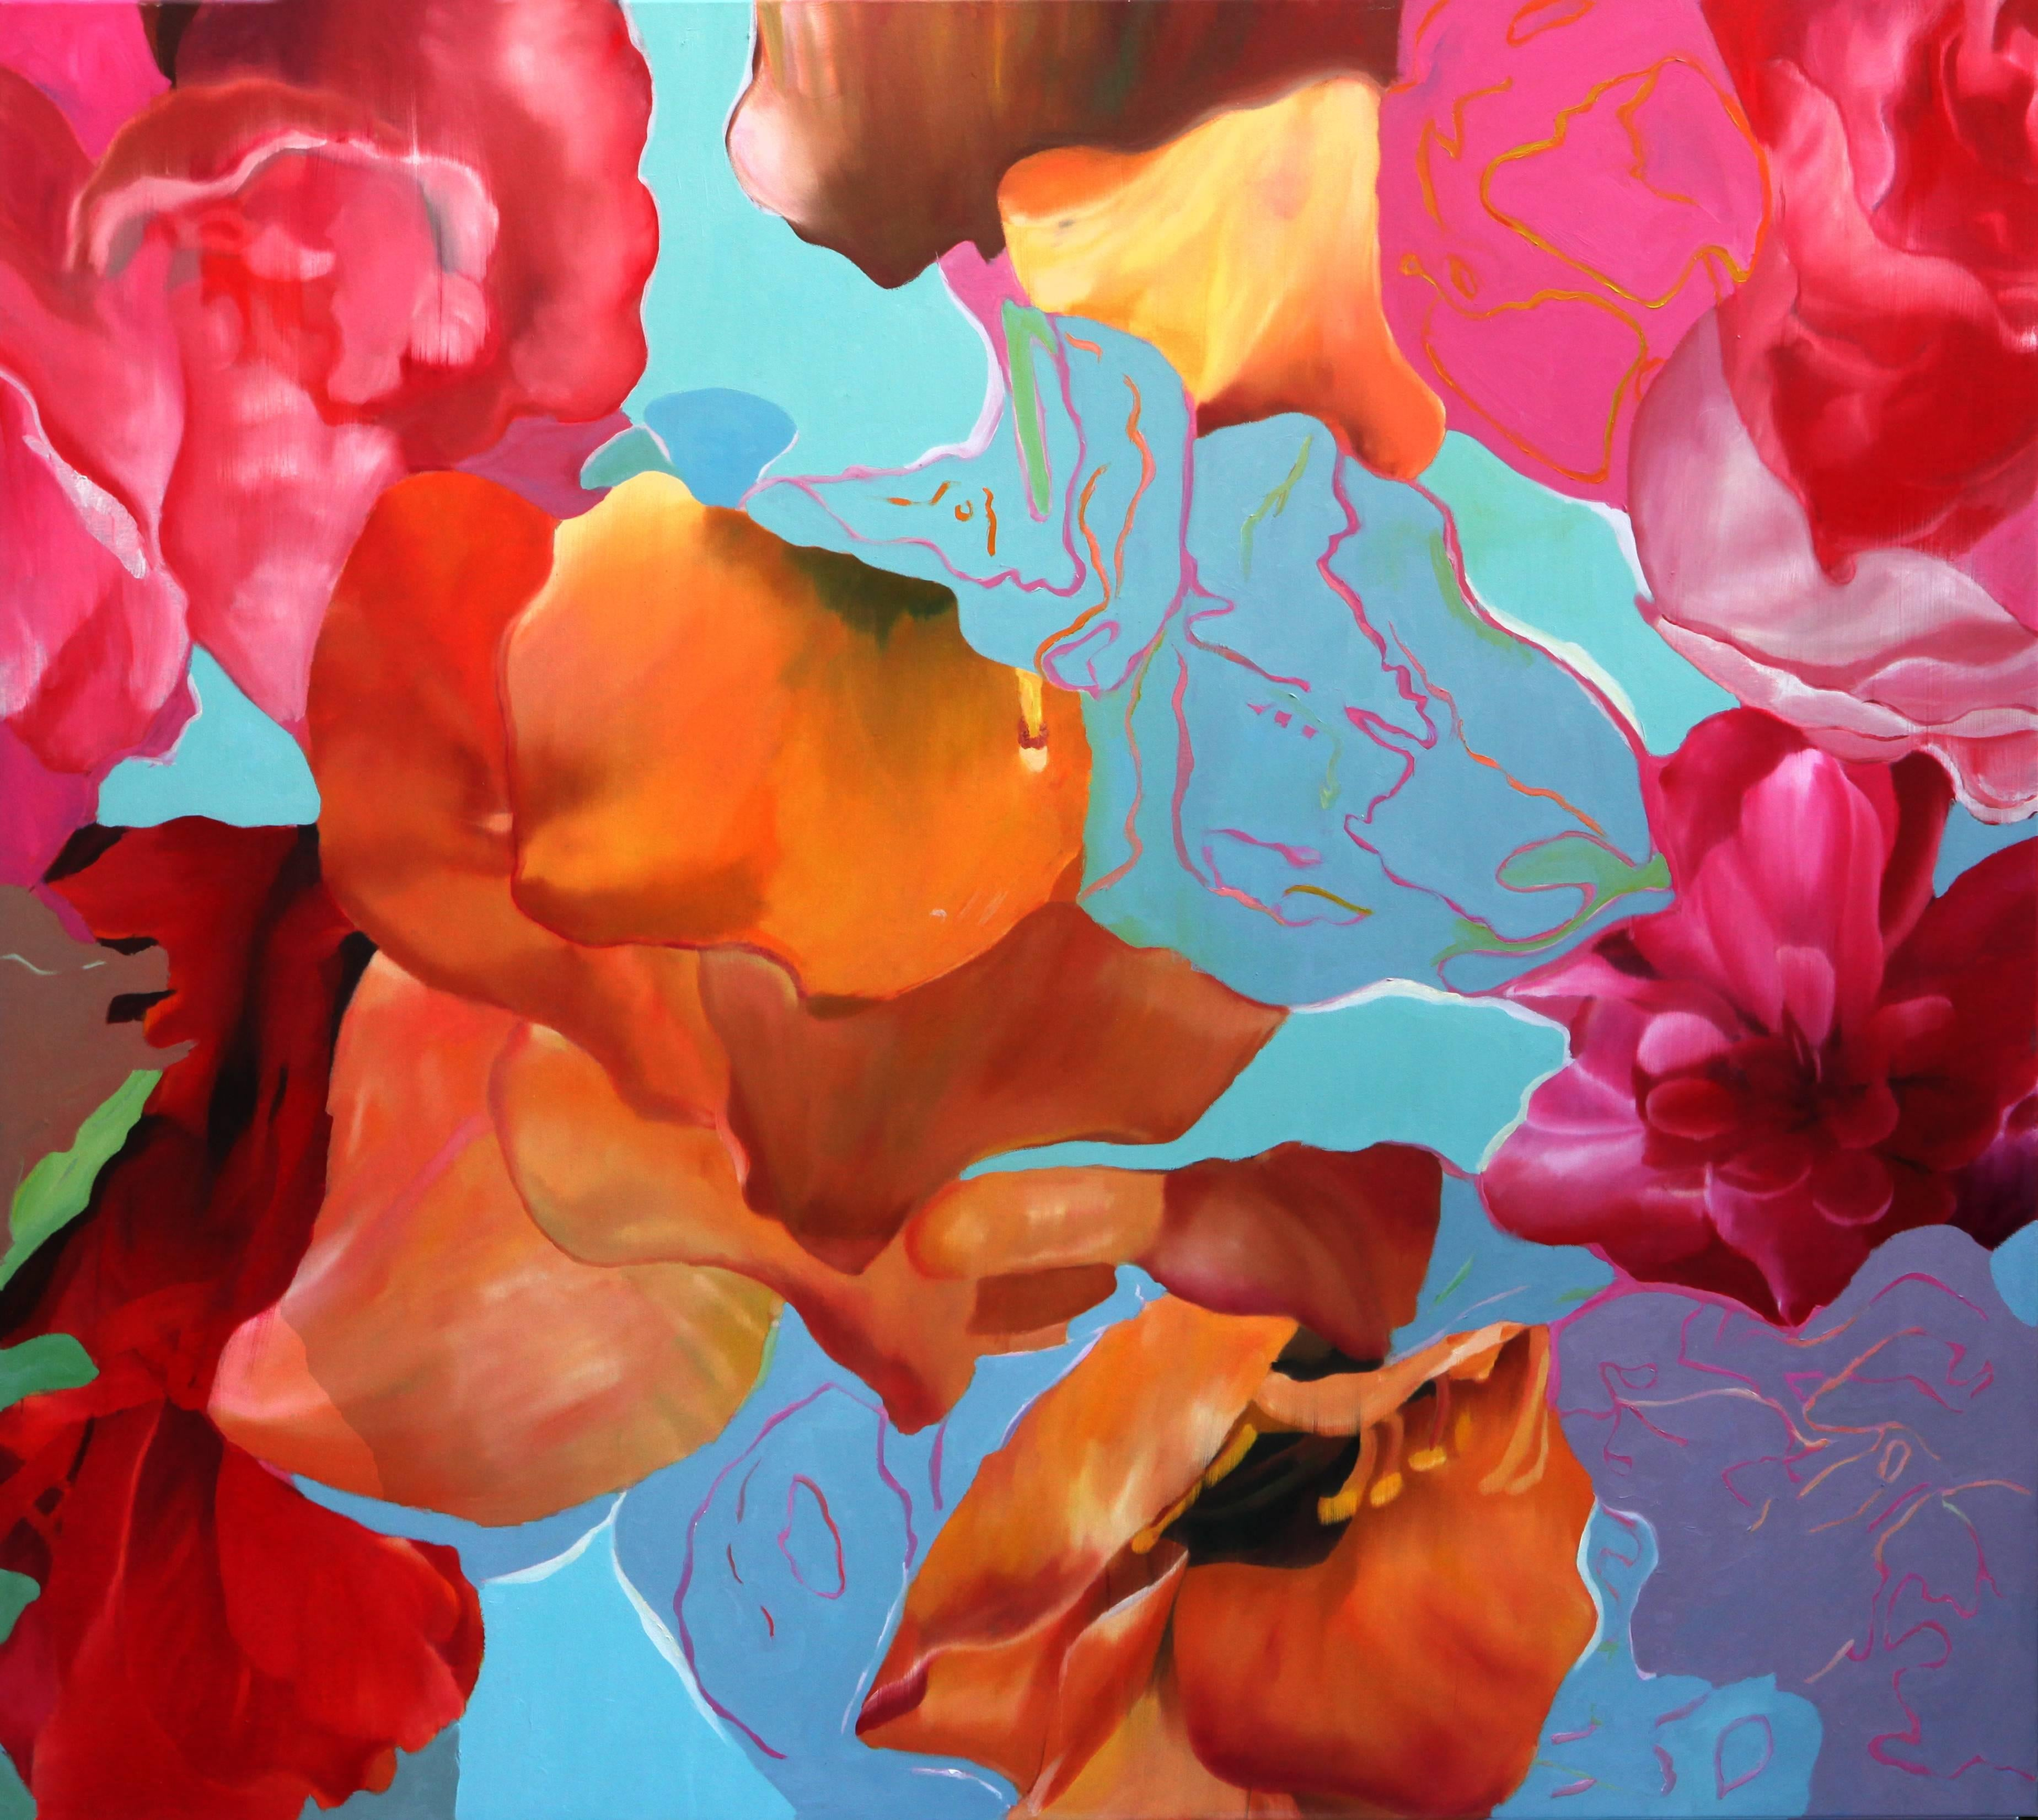 Time and Nature Djawid Borower Very Large Abstract Floral Blues Pinks